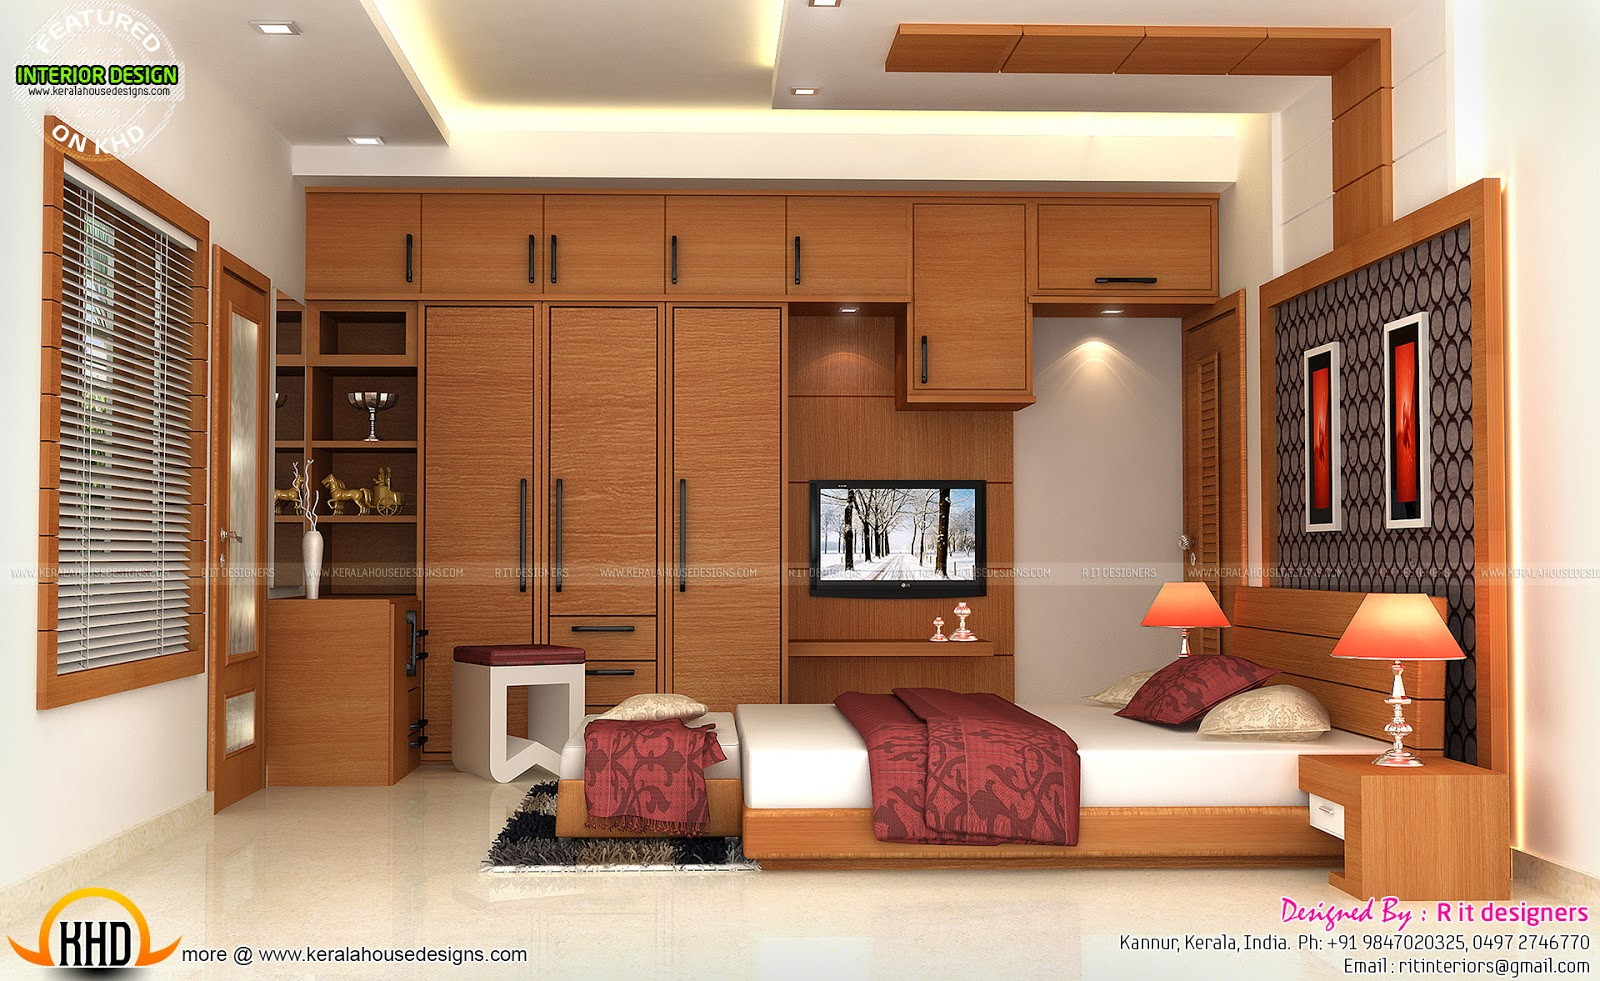 Interiors Of Bedrooms And Kitchen Kerala Home Design And Floor Plans